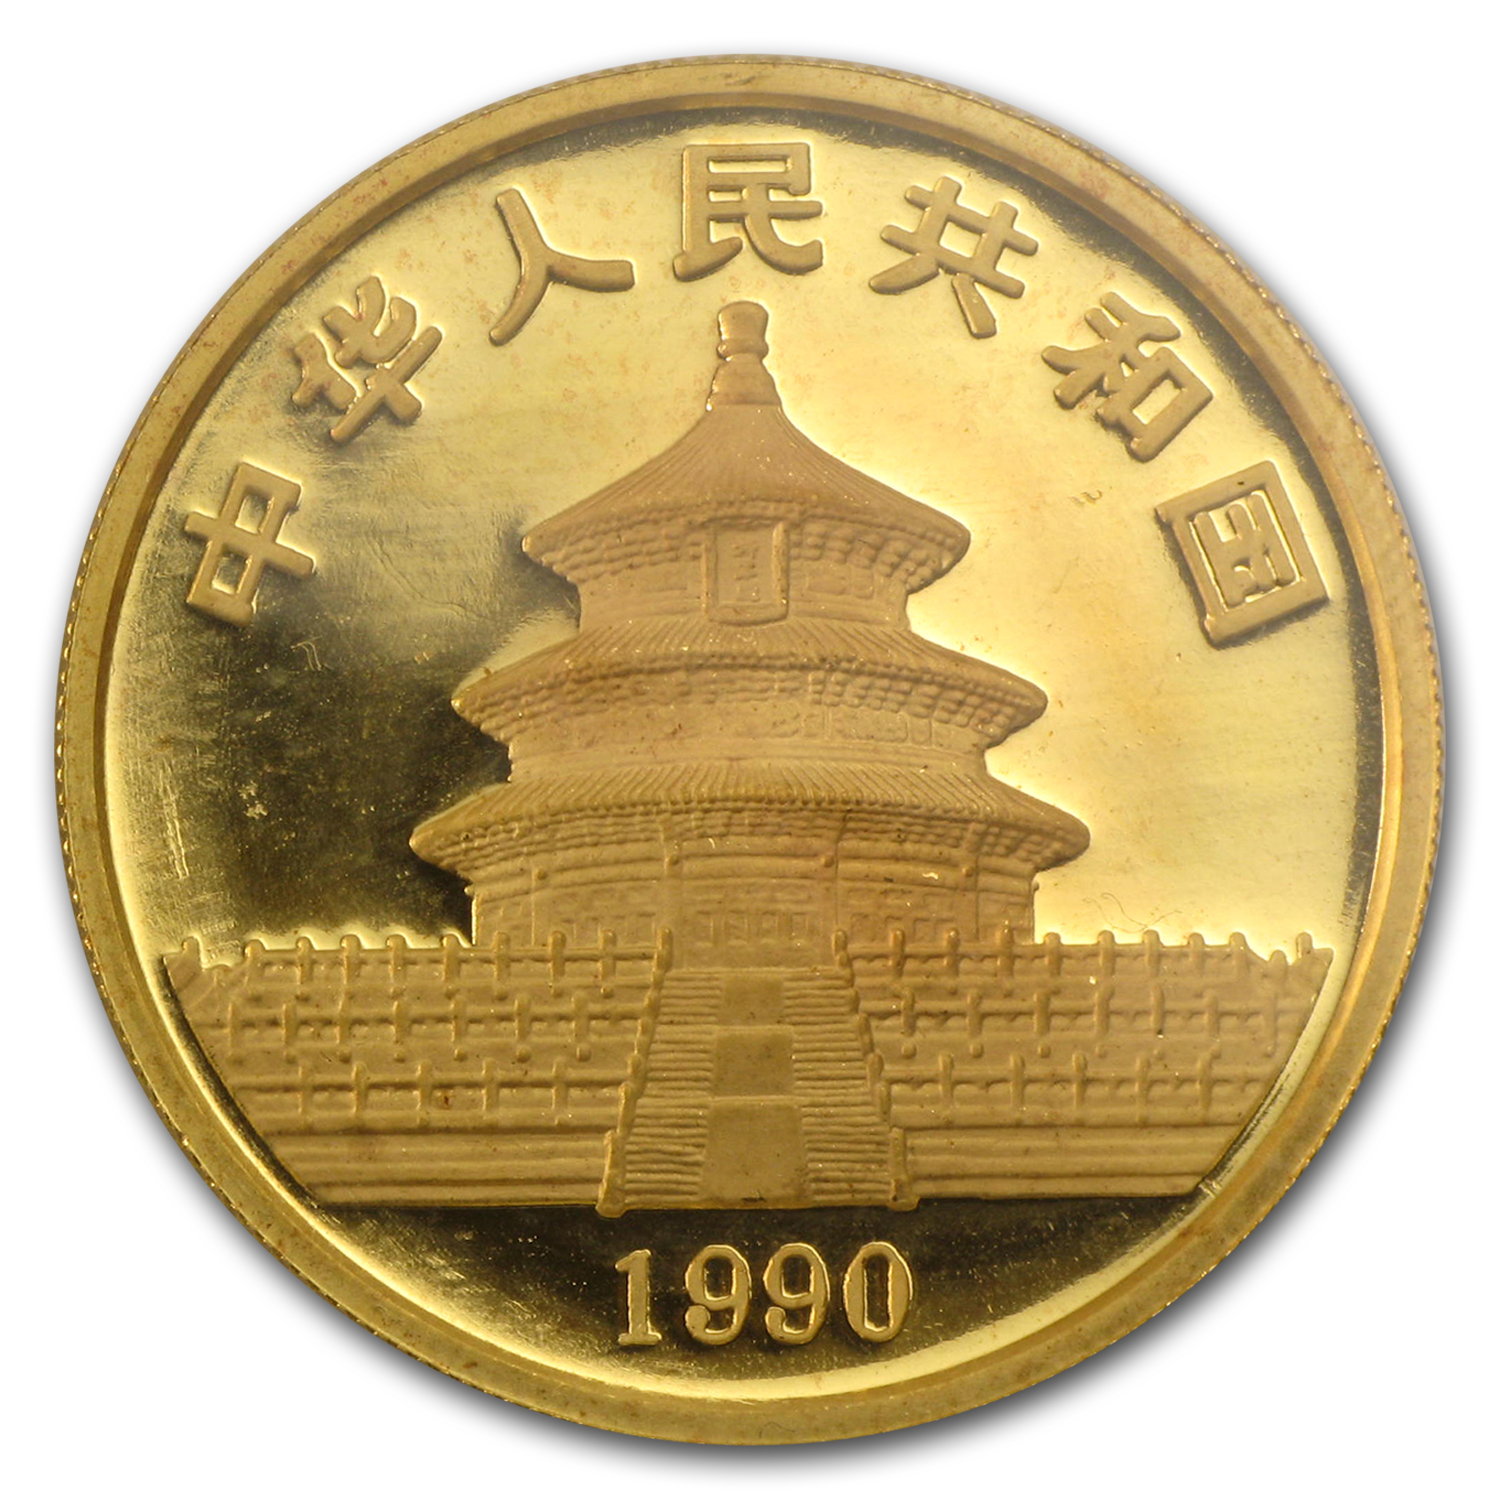 1990 1 oz Gold Chinese Panda - Large Date (Sealed)